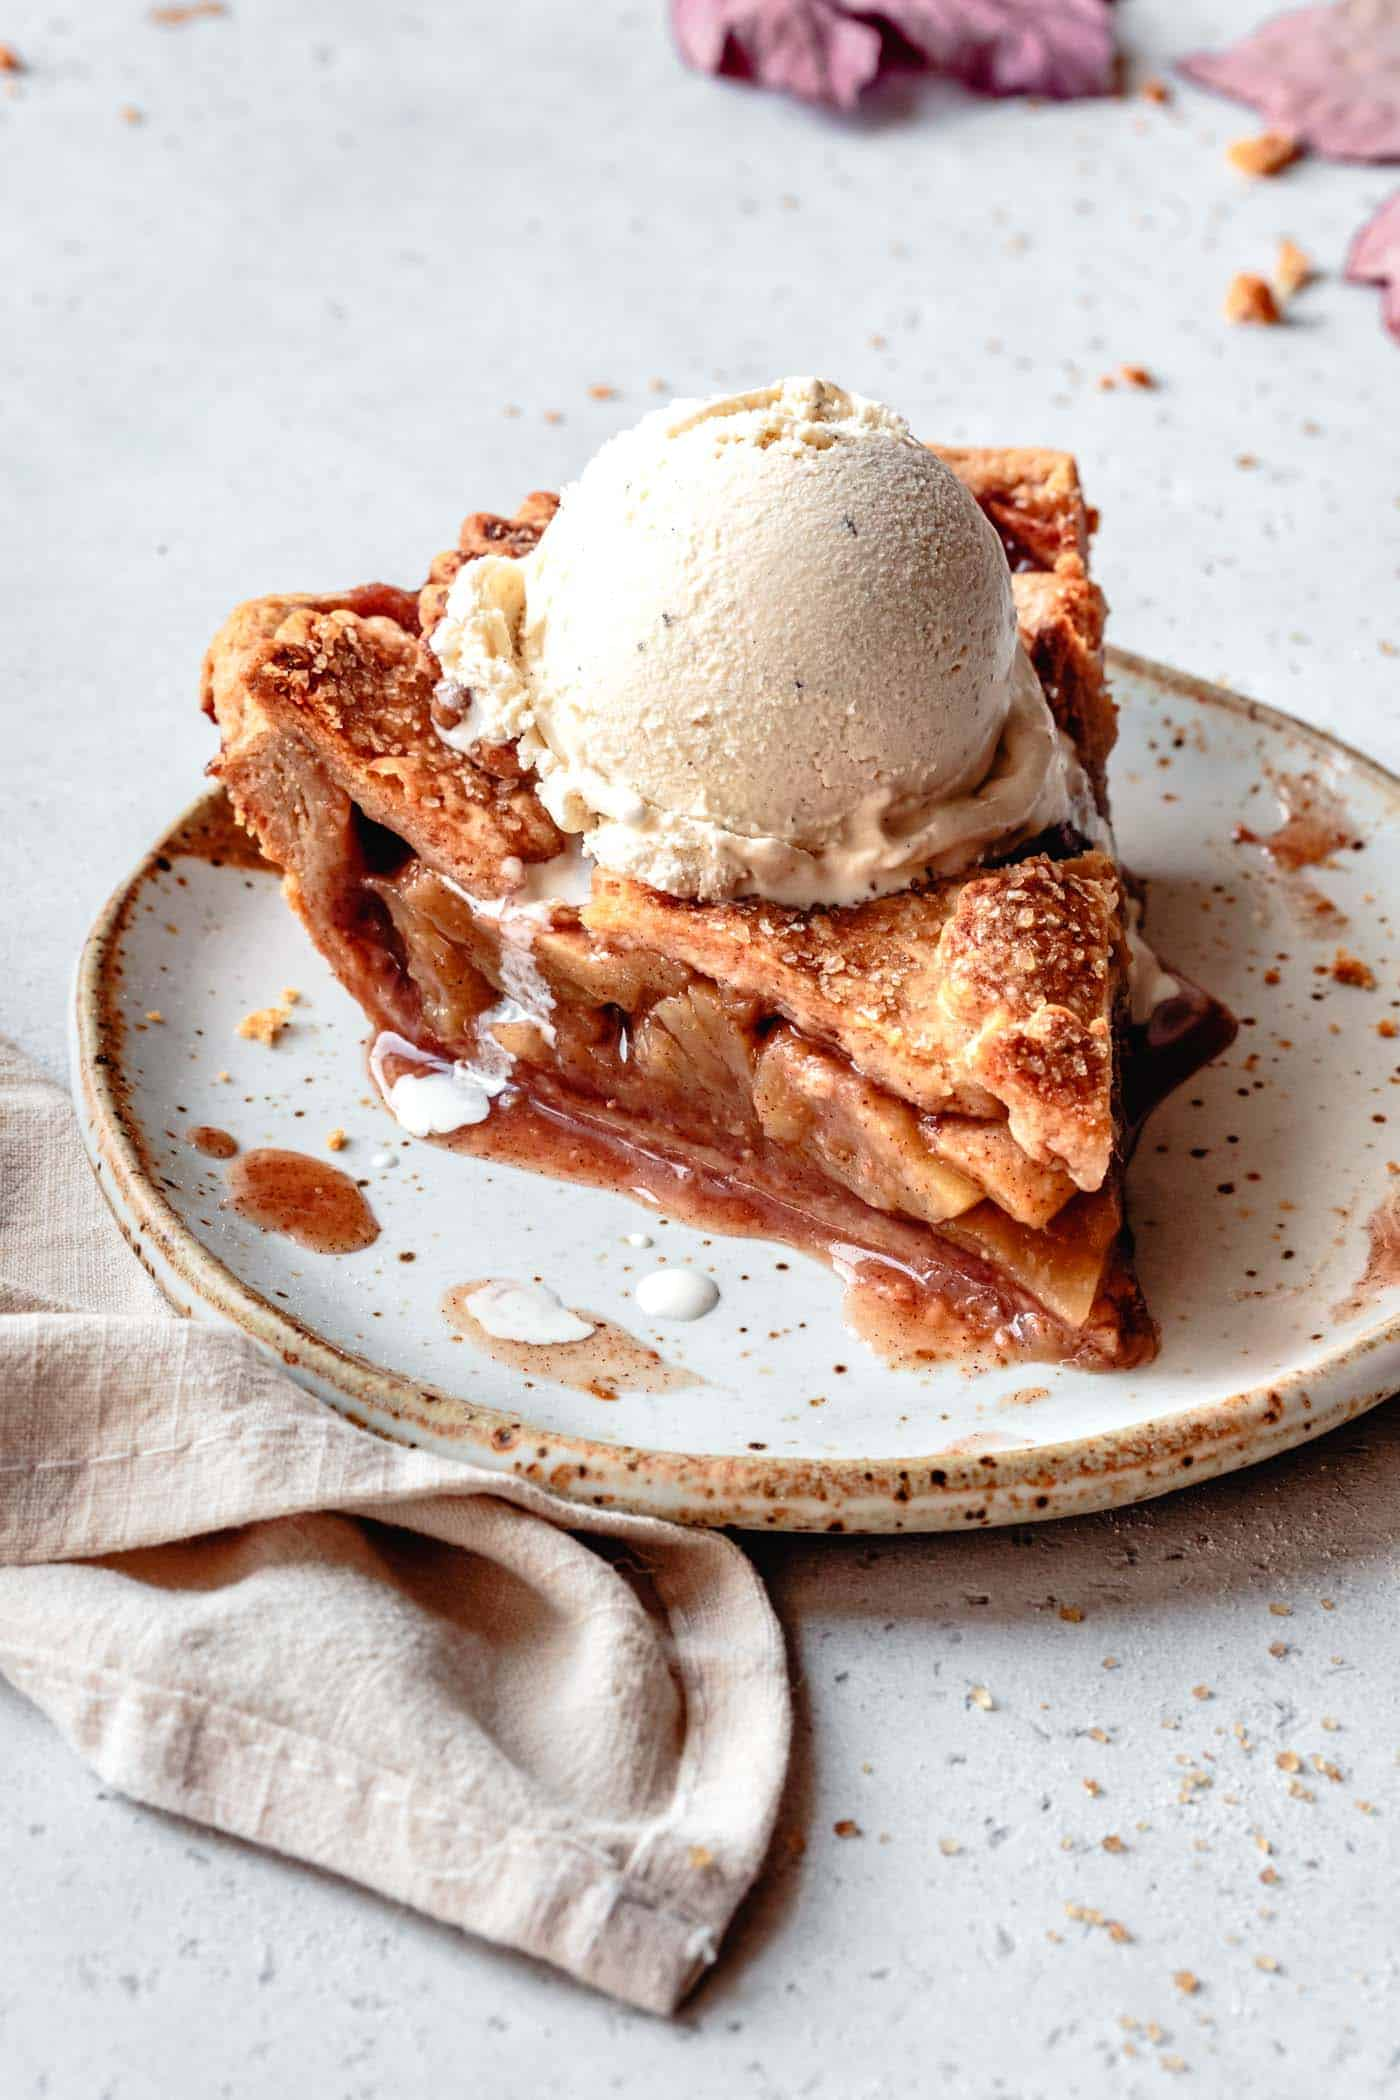 slice of gf apple pie on a beige plate with a scoop of ice cream melting on top